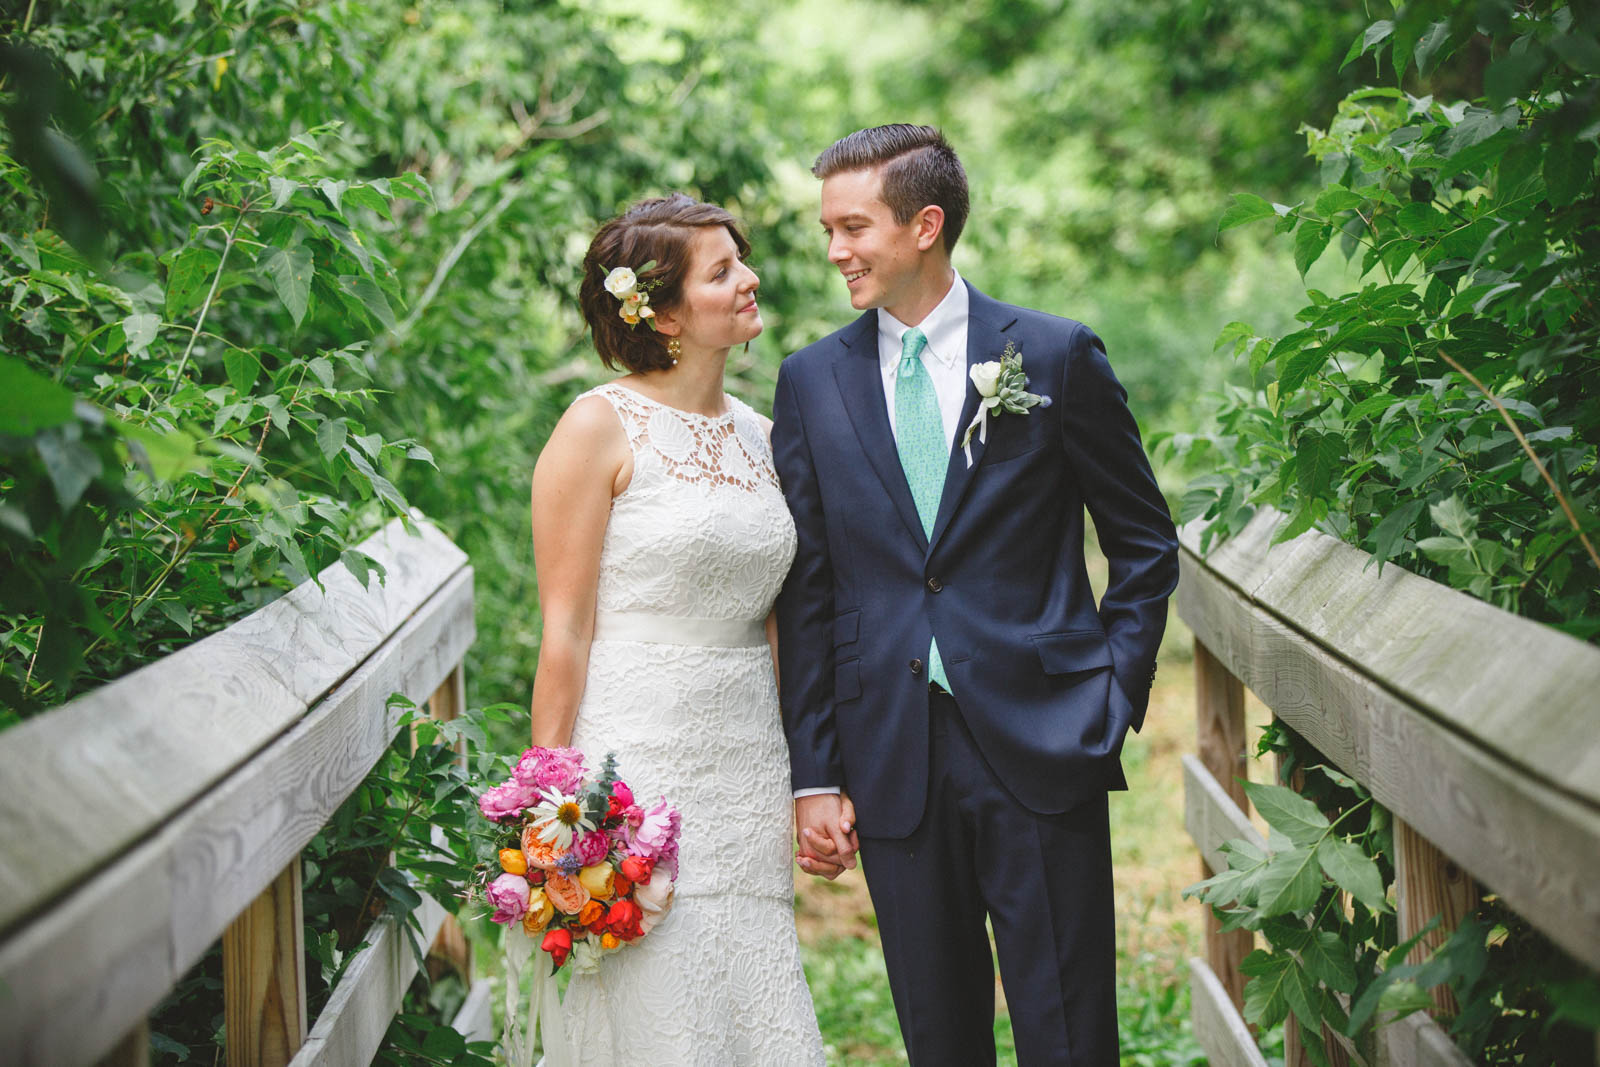 How to create and build a successful wedding photography business.